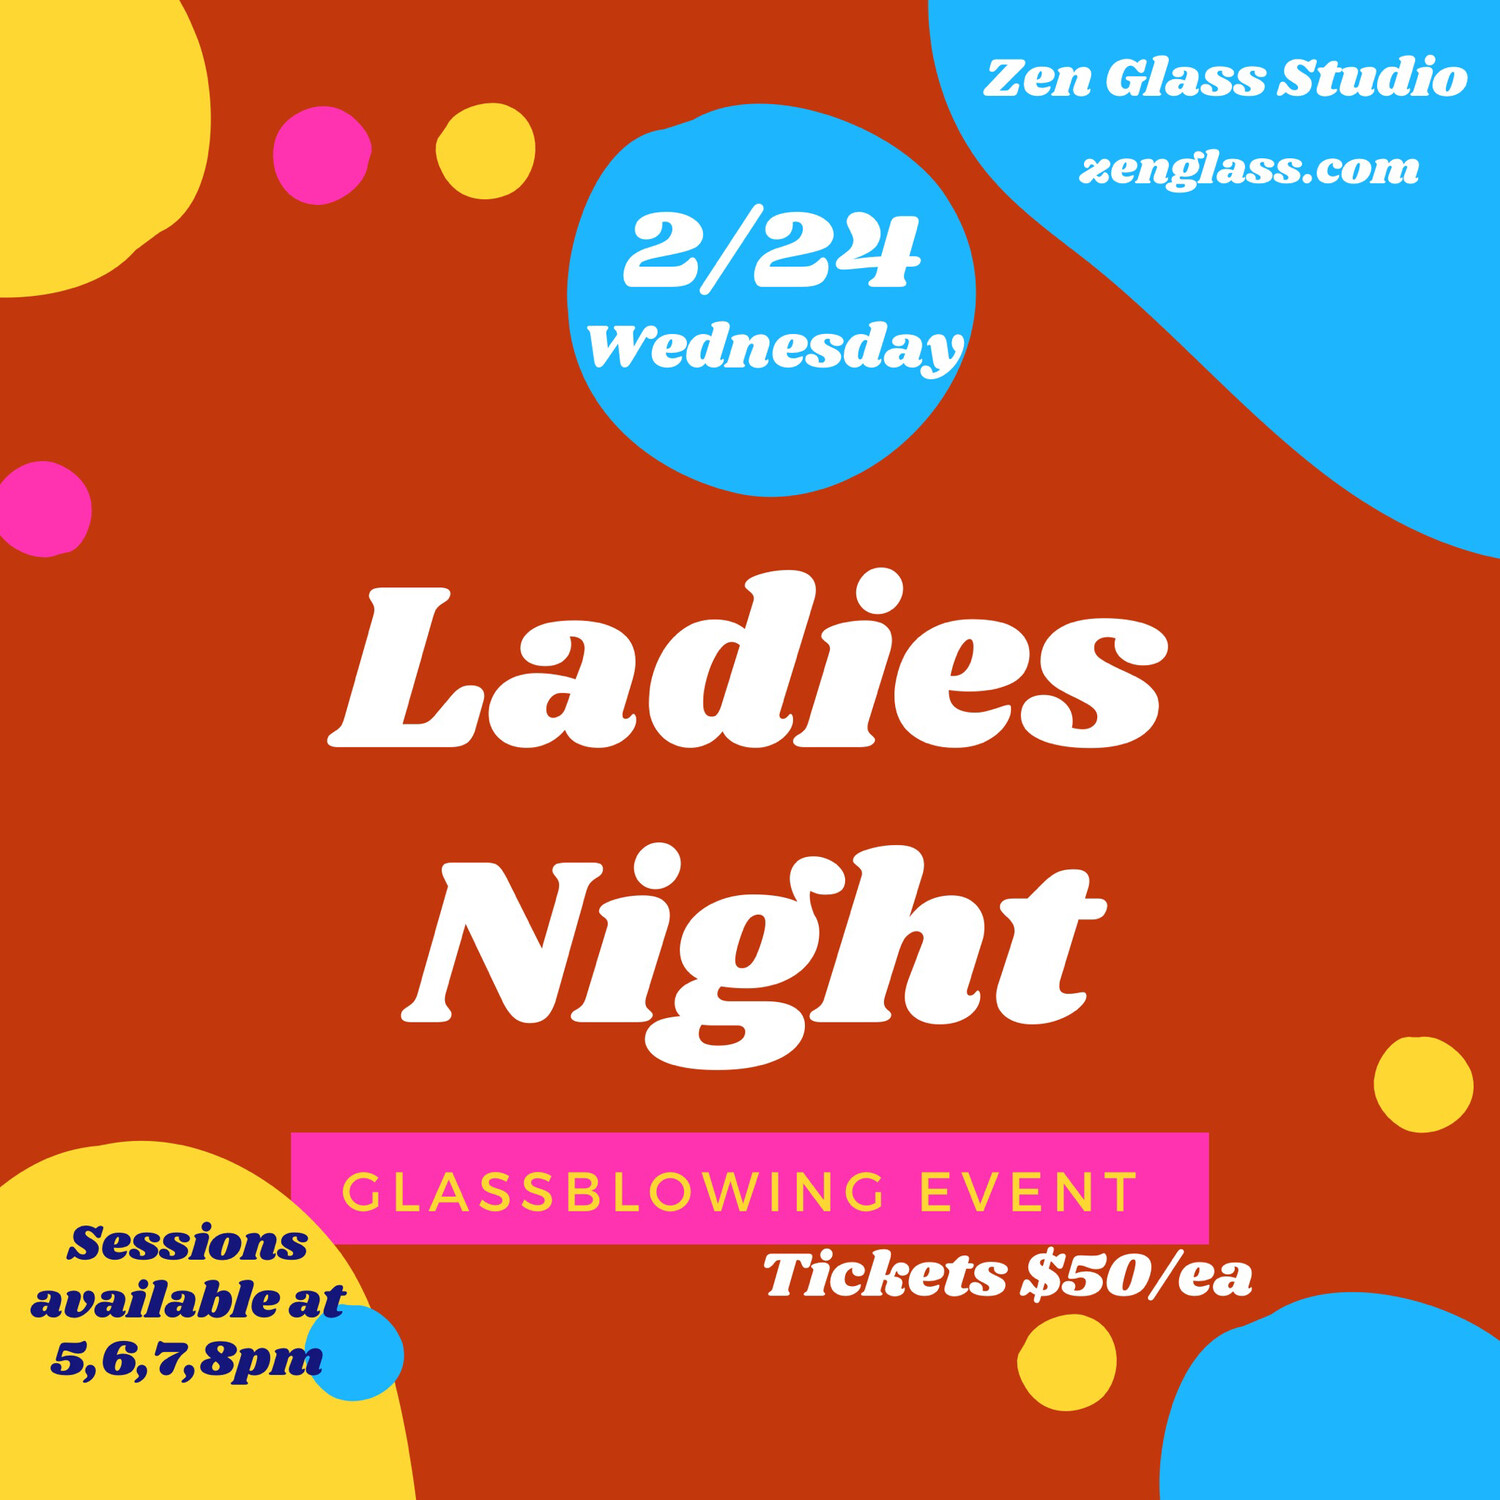 Ladies Night Wednesday February 24th 7pm